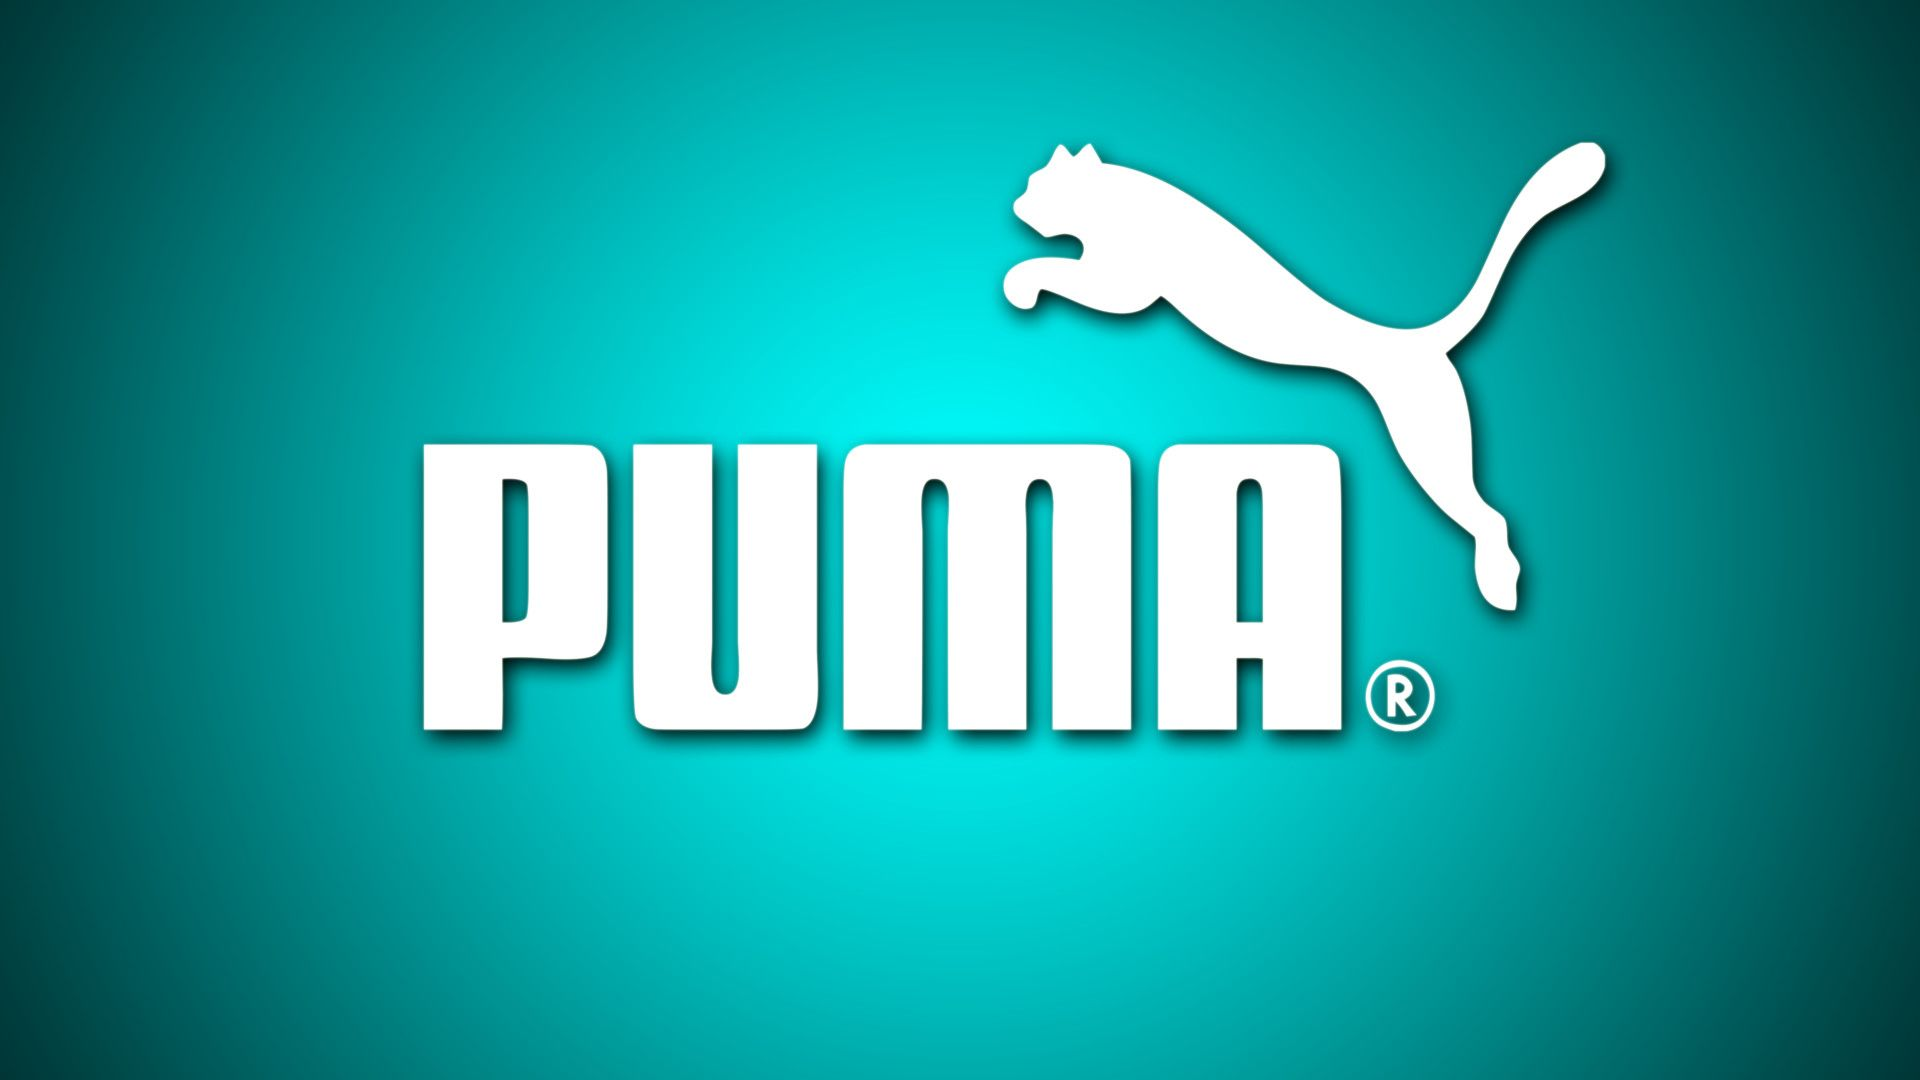 1920x1080 Puma Brand Logo with Cool Background Wallpaper - Wallpaper ...